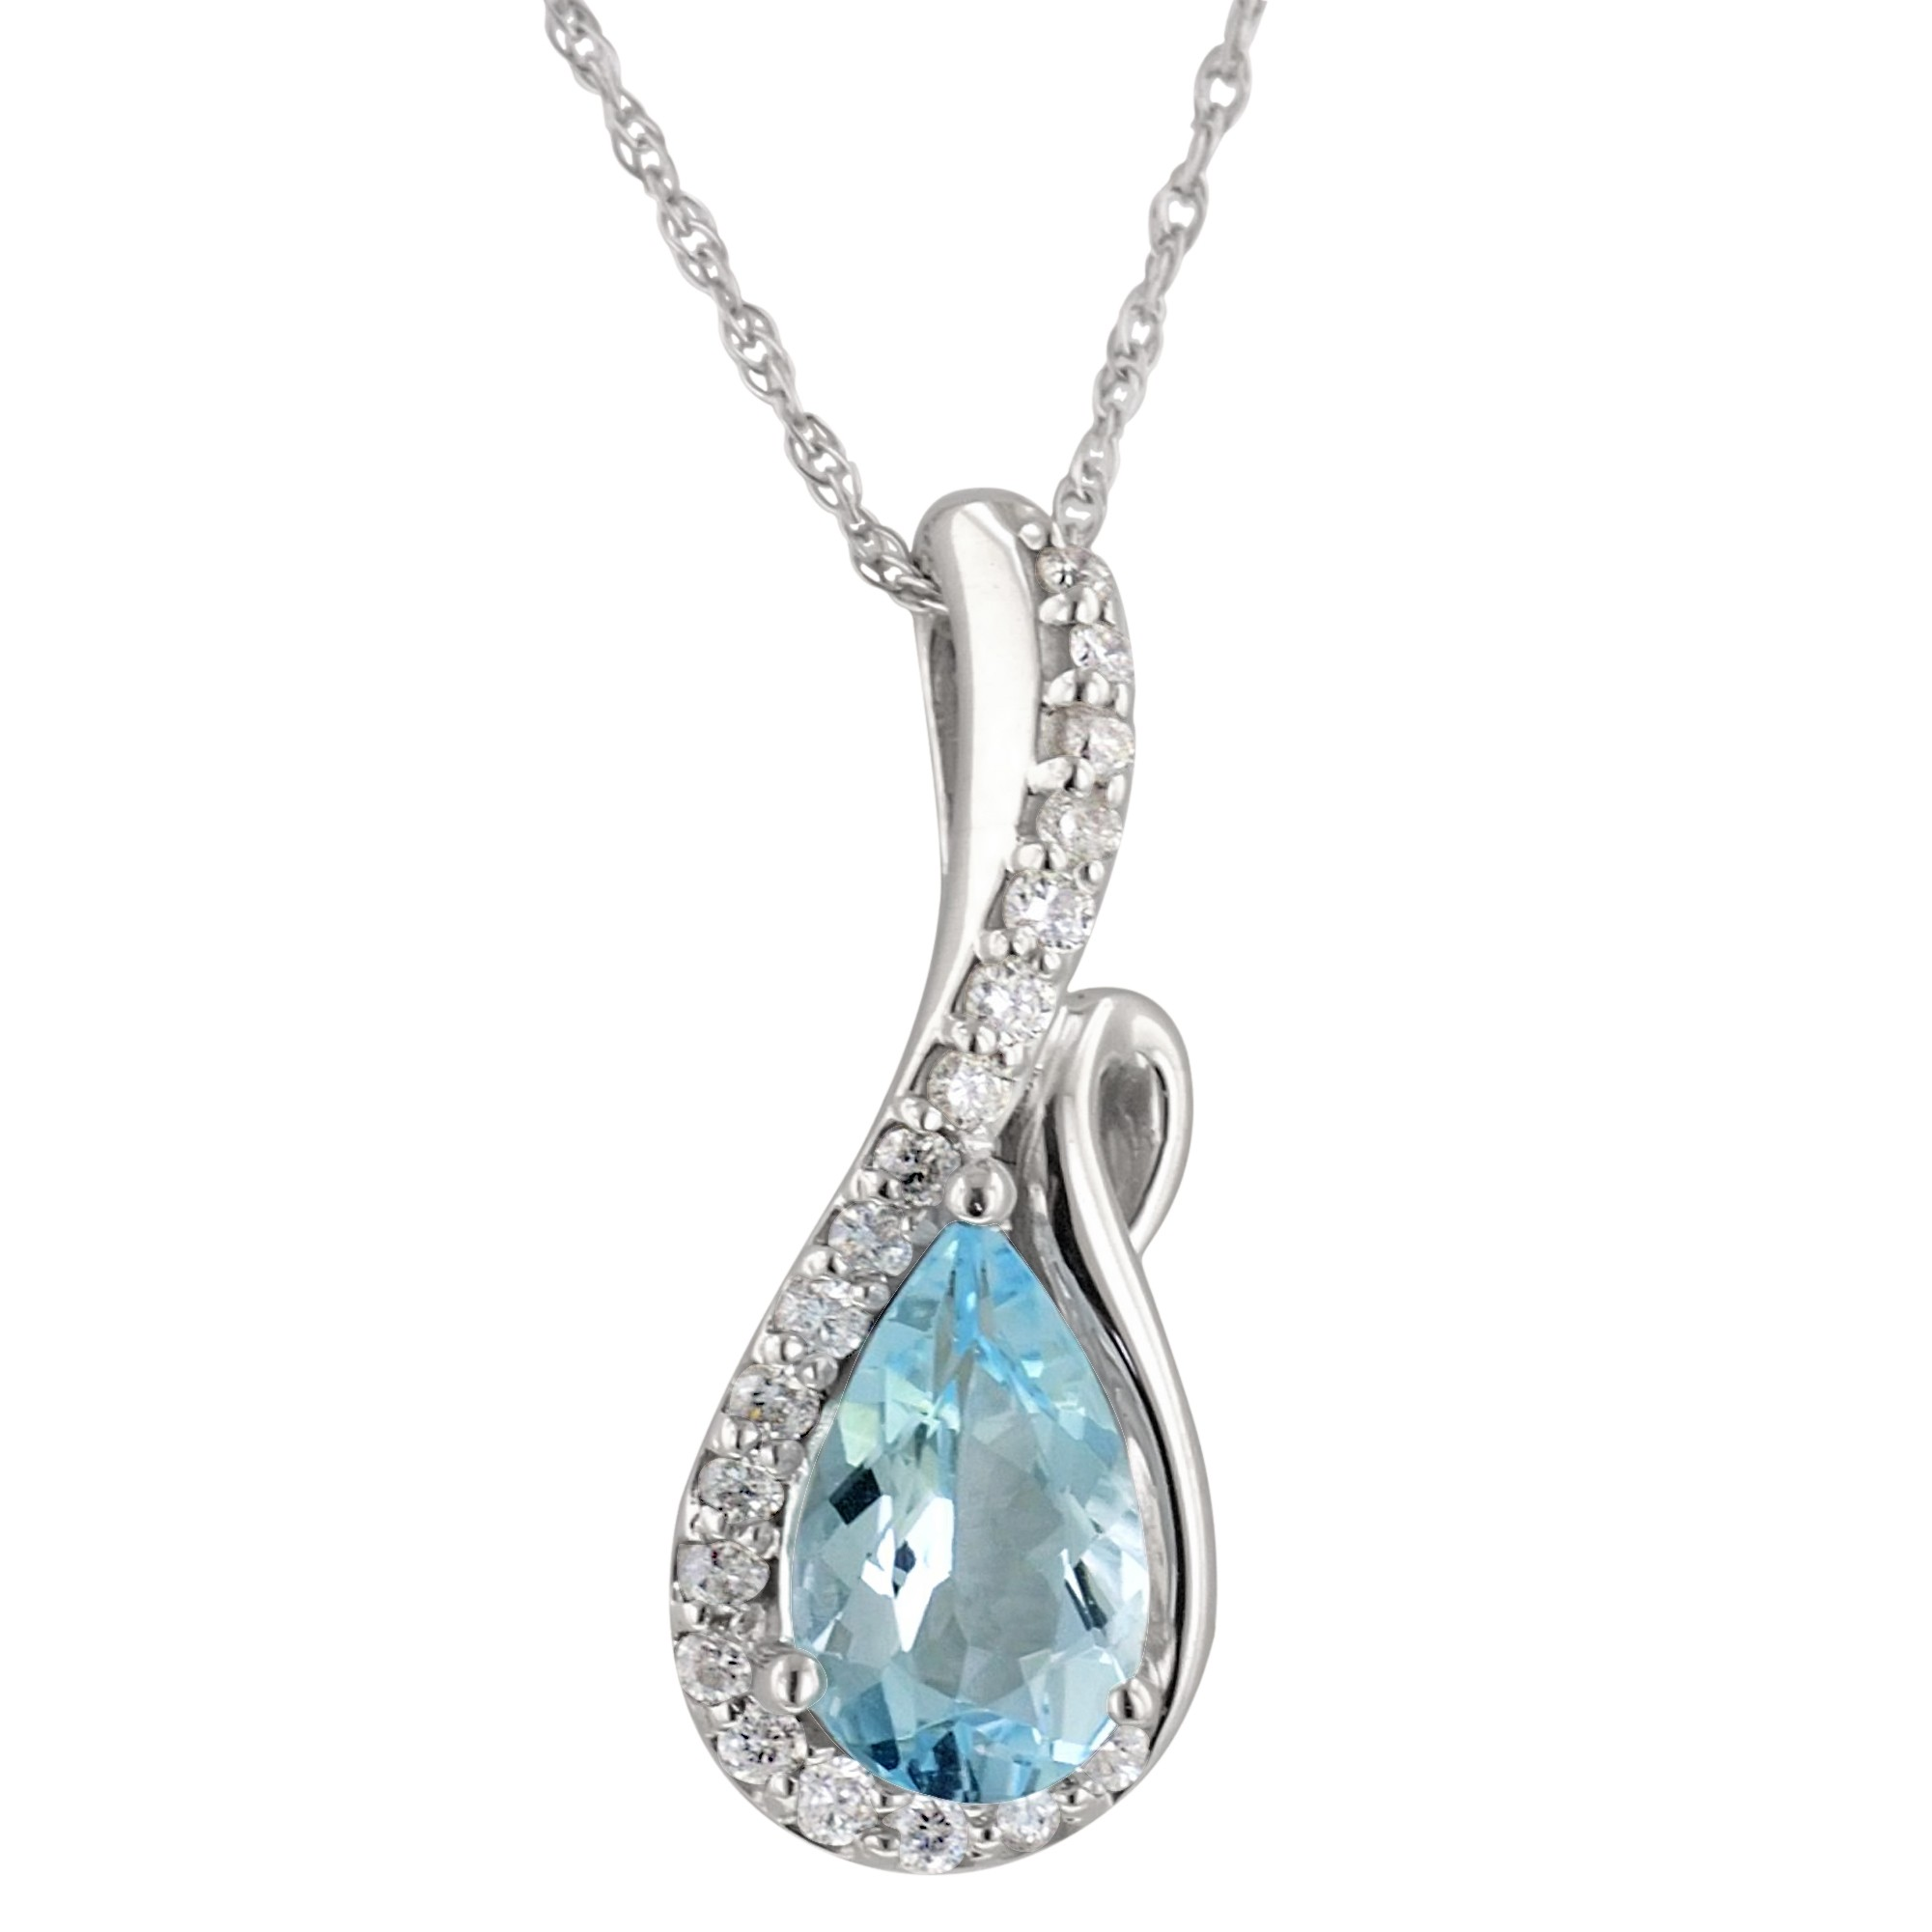 santa with necklace maria statement cluster elegant blue pendant aquamarine design scapolite